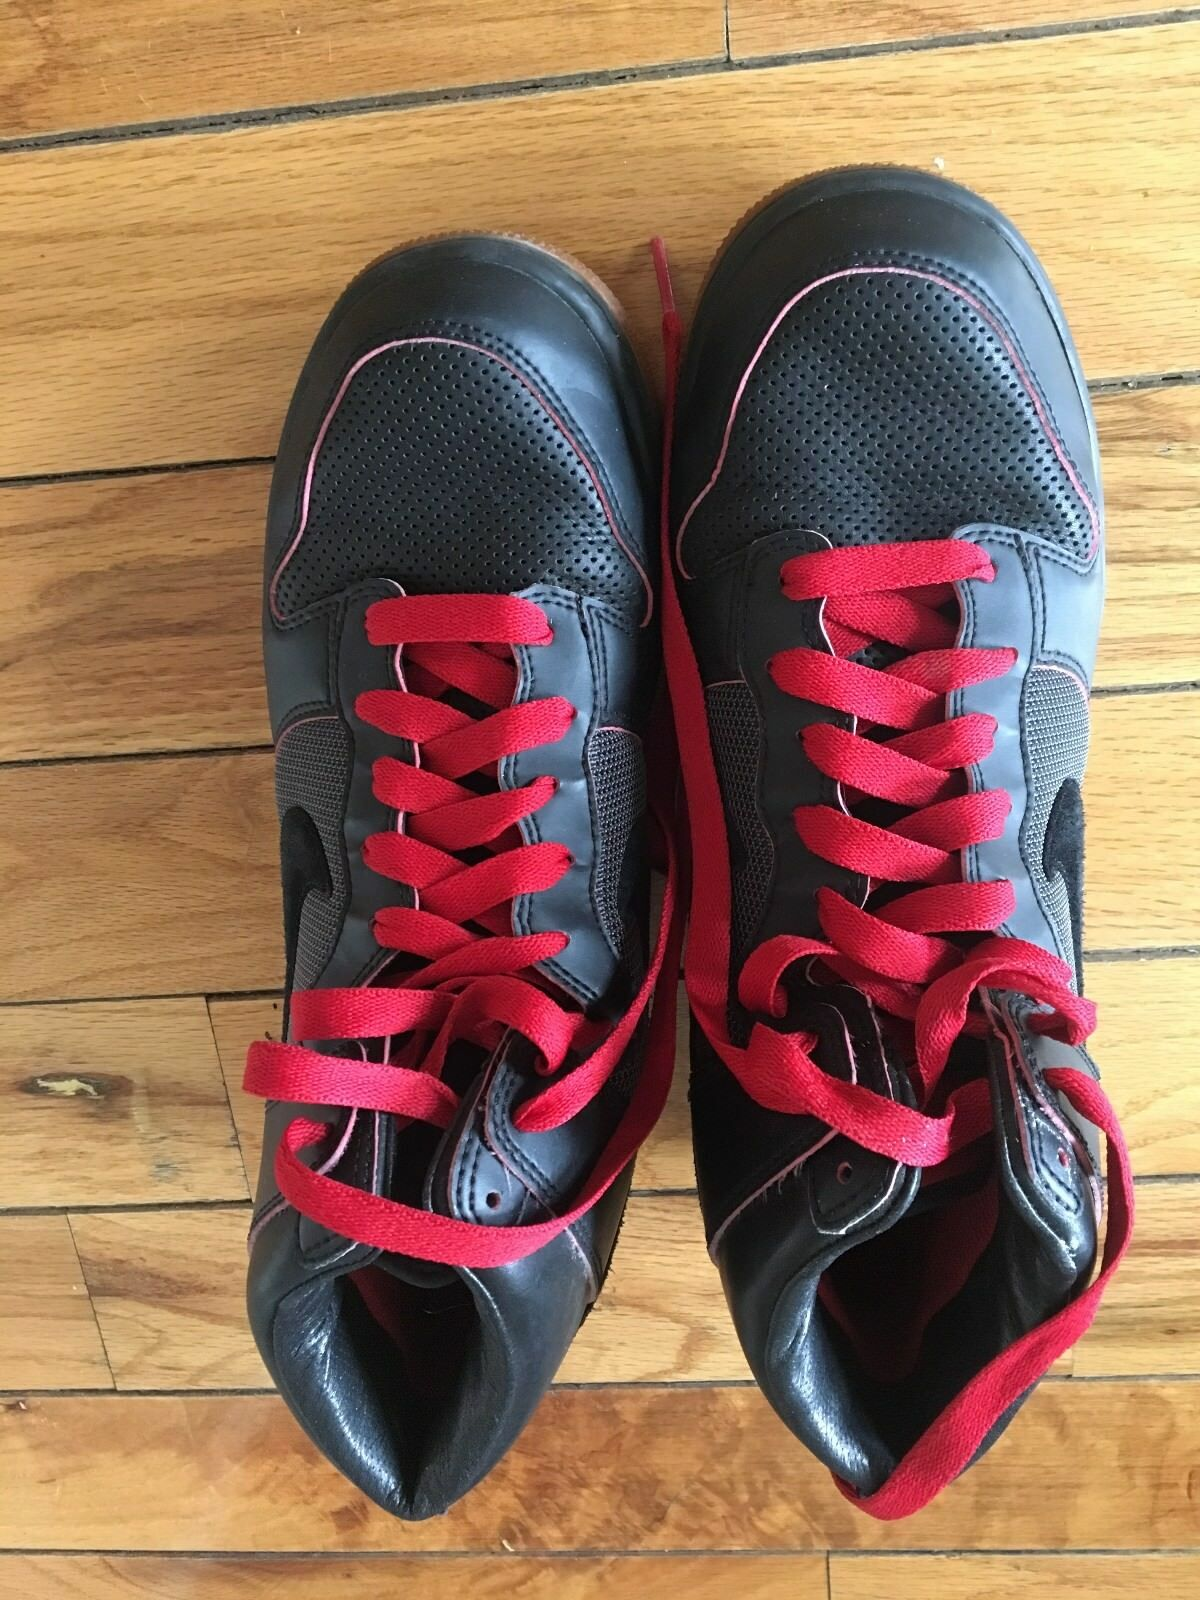 Gentleman/Lady NIke SB Dunk, Black and Red Ideal sale gift for all occasions Year-end sale Ideal professional design 0ec0e6